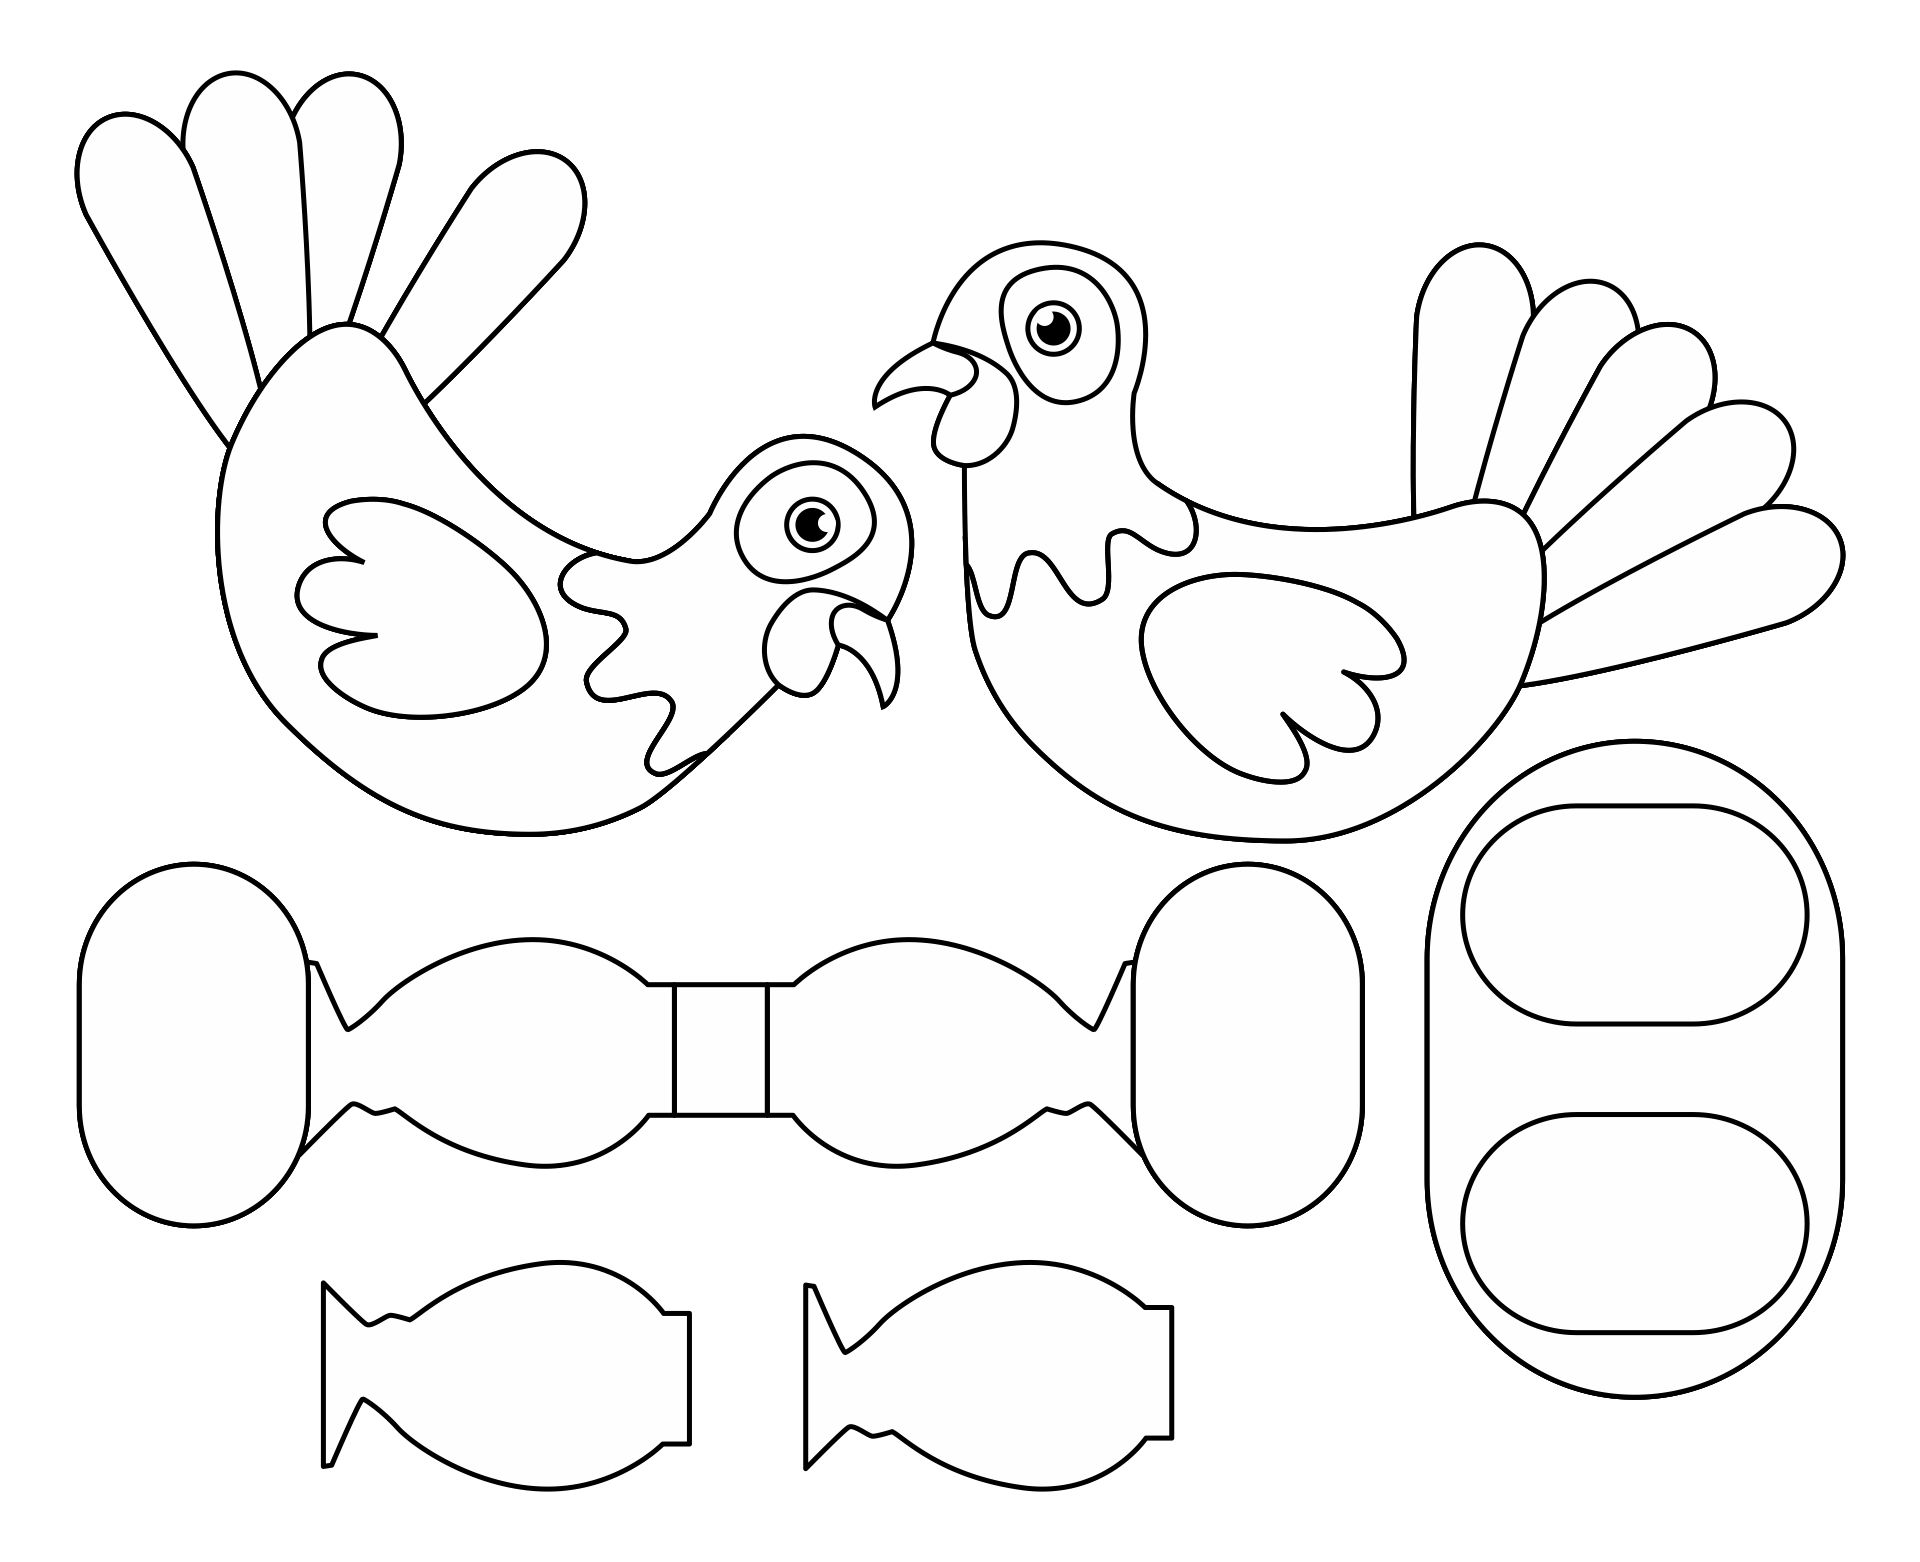 4 Best Images of Thanksgiving Turkey Cutouts Printable ...